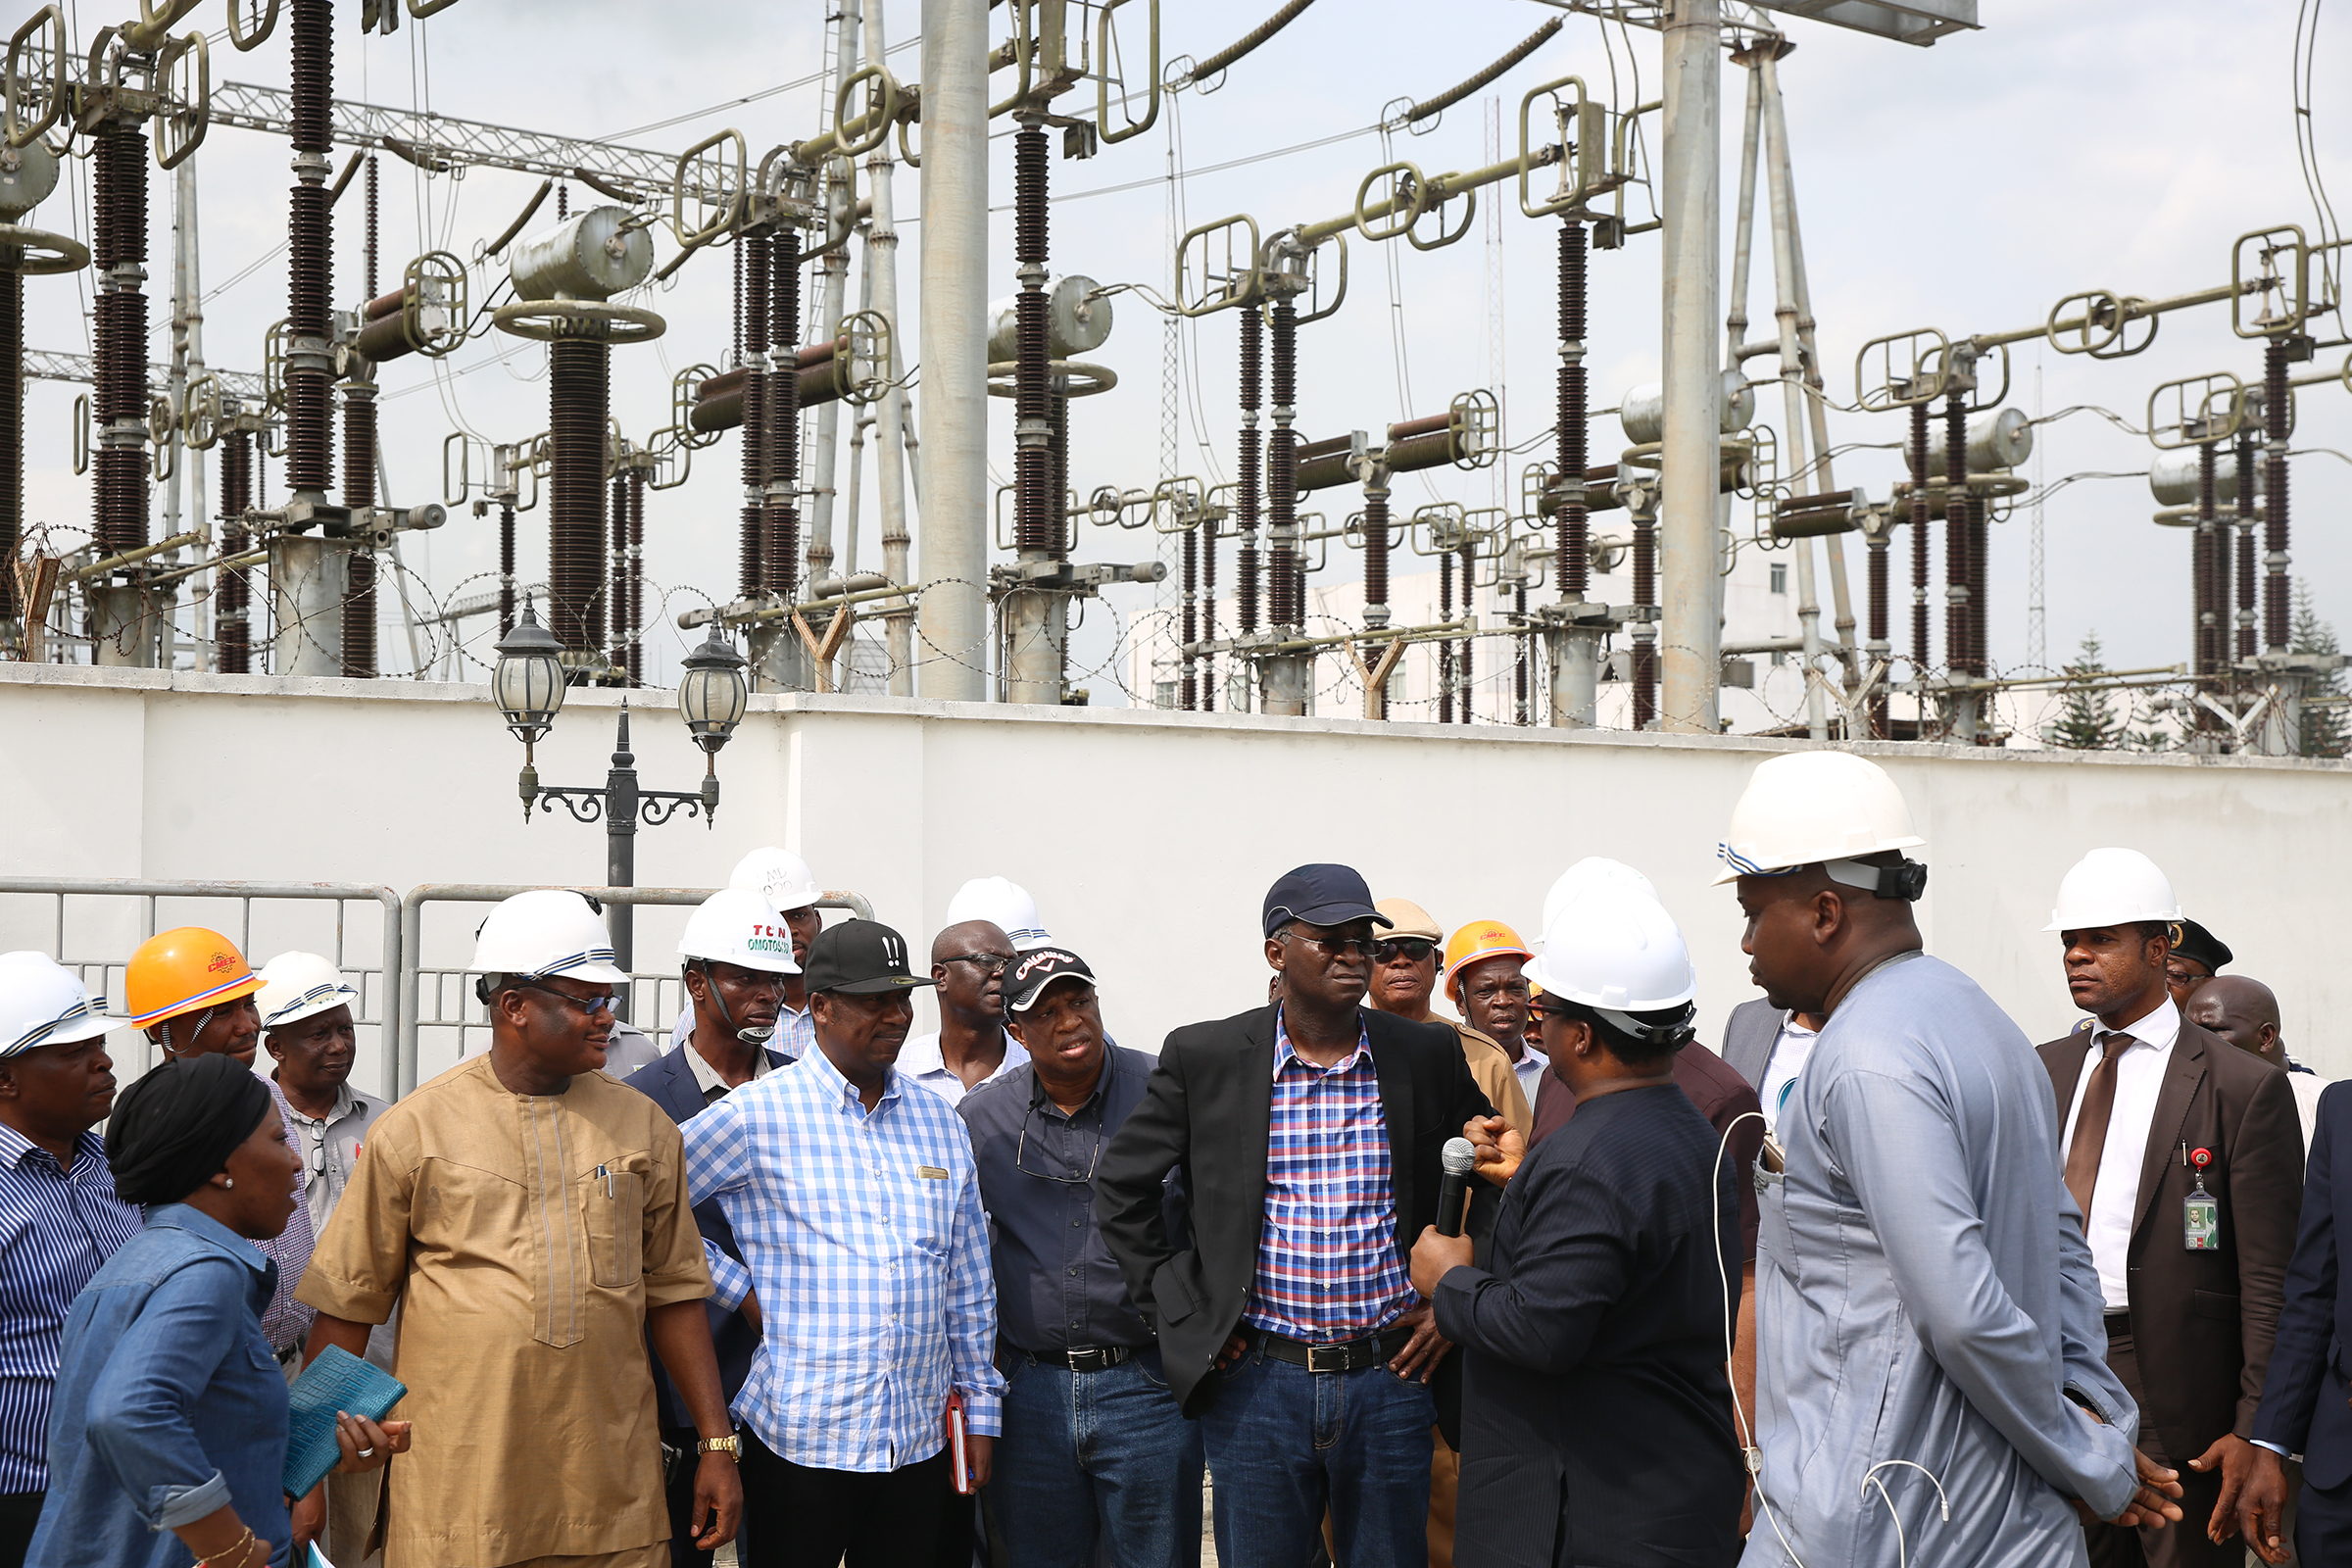 Photos: Fashola Inspects Omotosho Electric Energy Generation Company in Ore, Ondo state